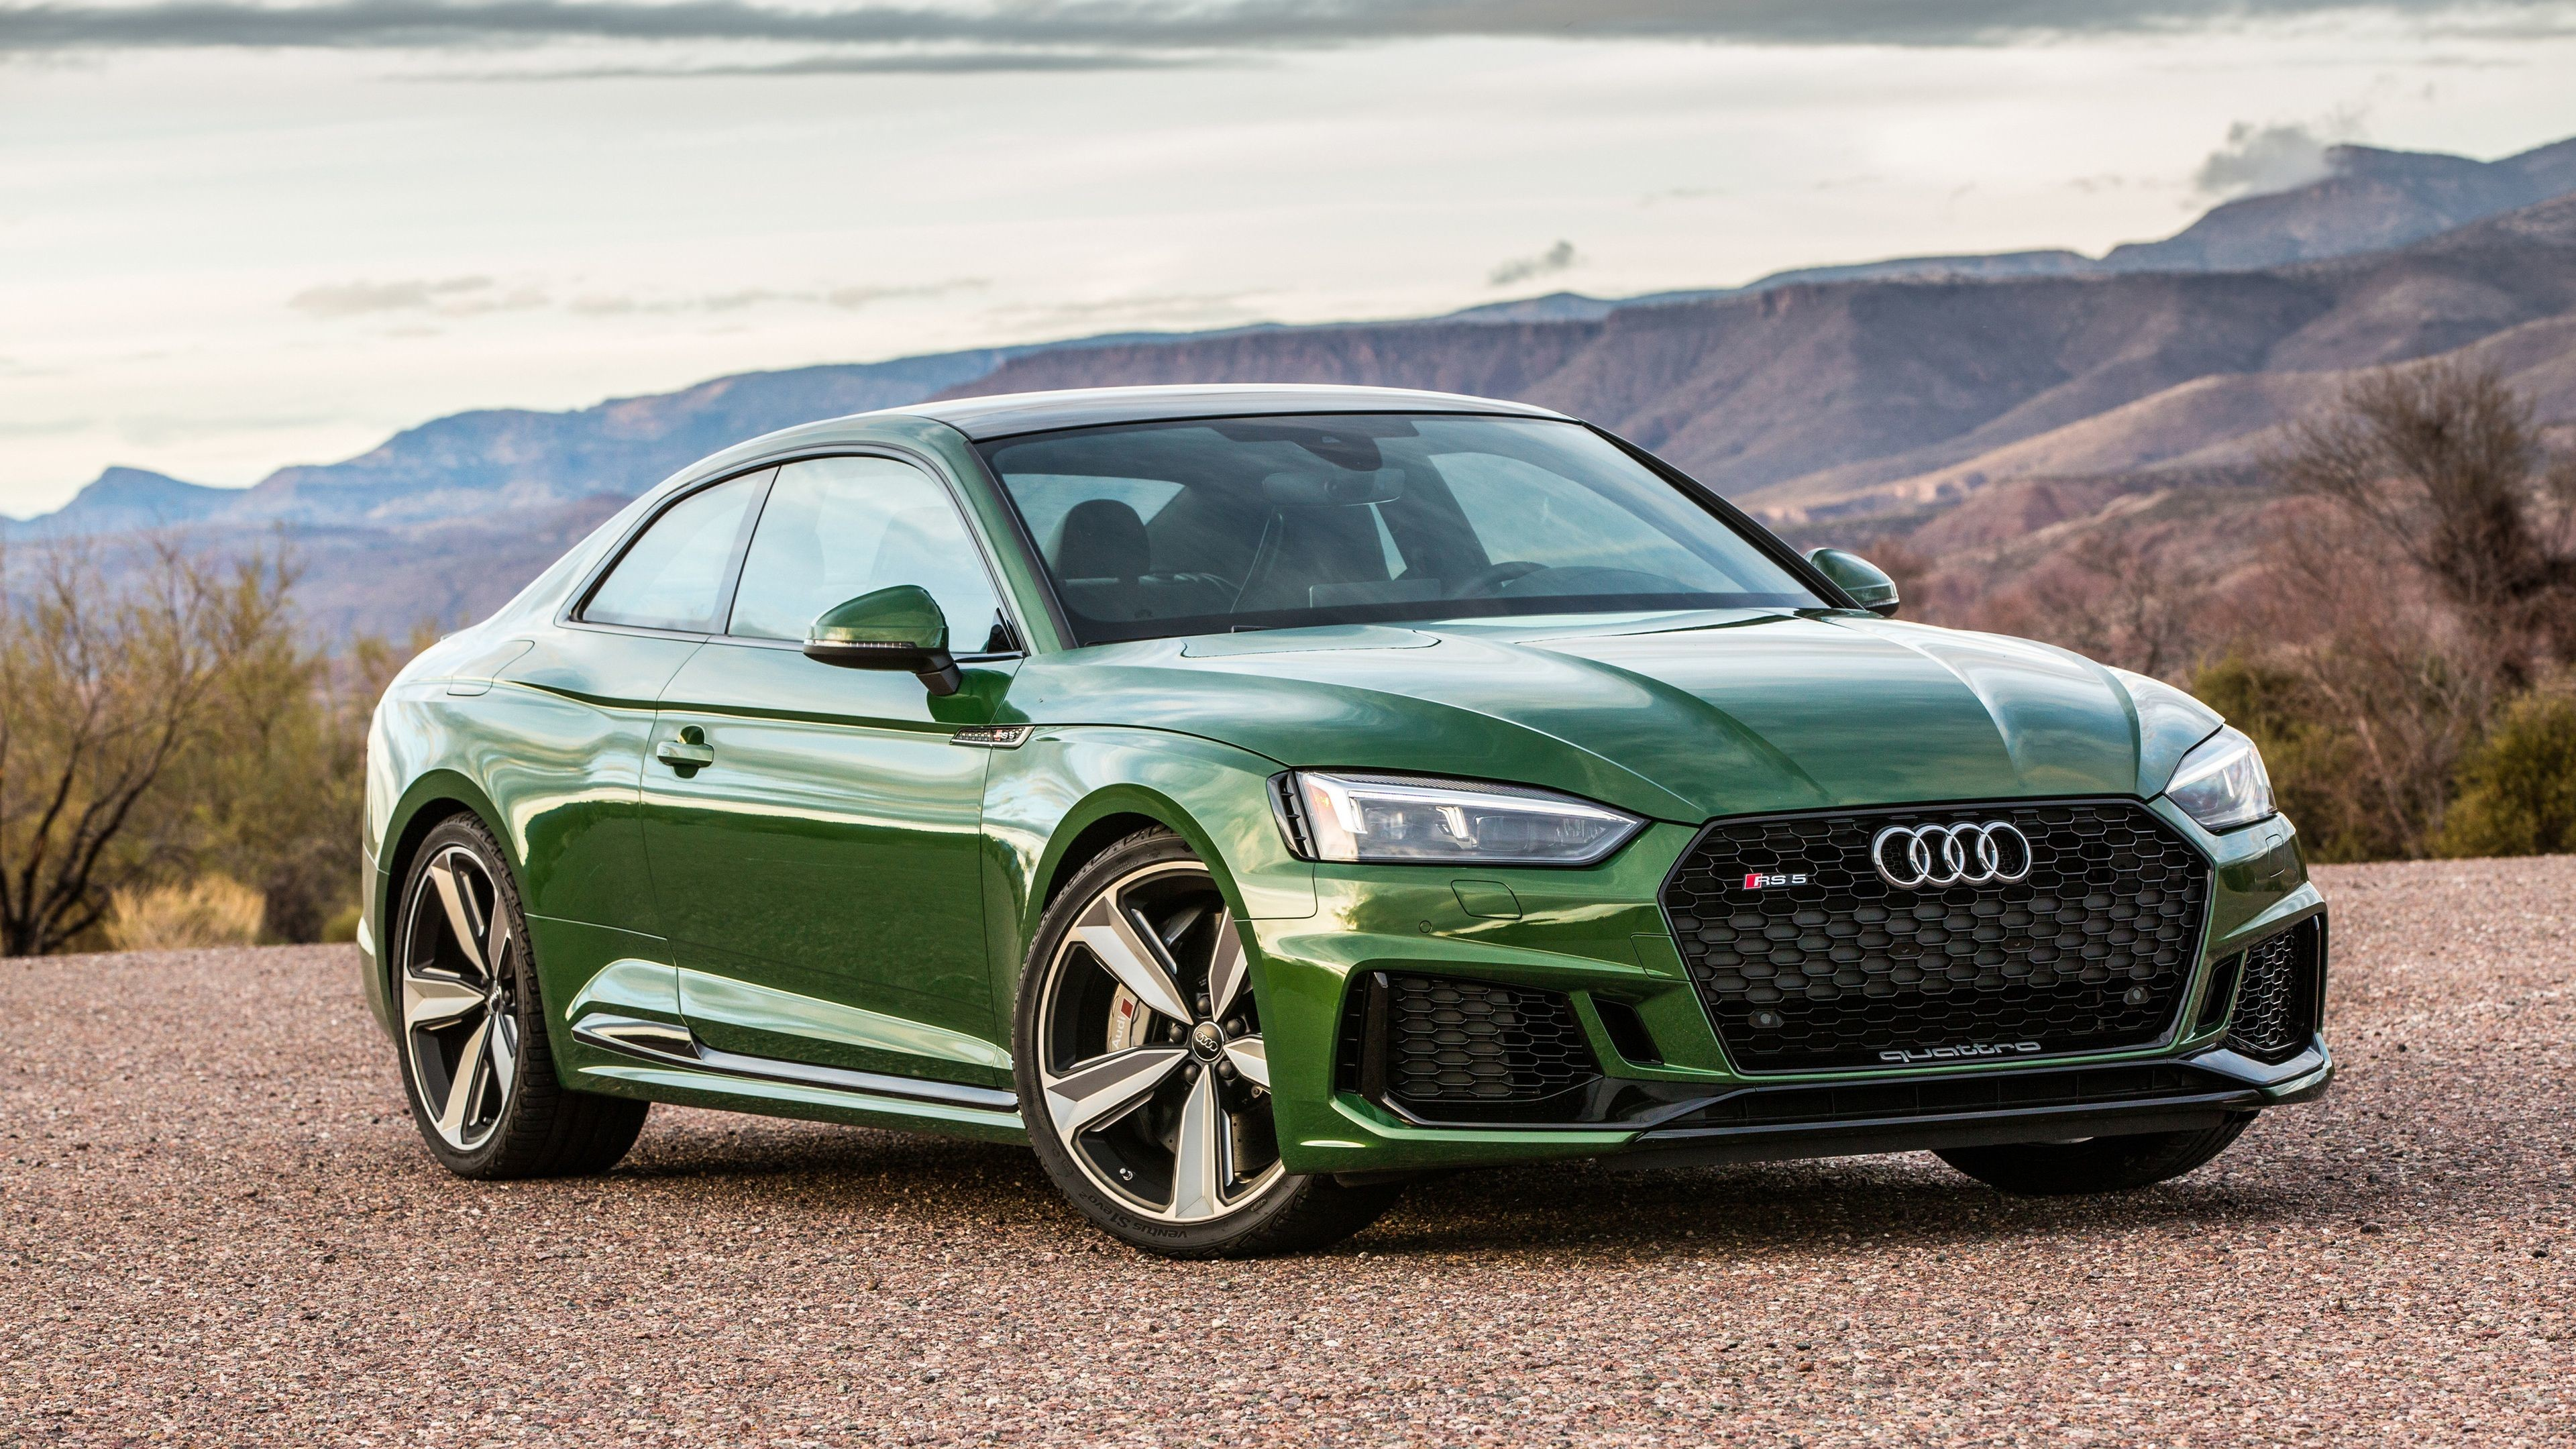 Res: 3840x2160, 2018 Audi RS 5 Coupe hd-wallpapers, cars wallpapers, audi wallpapers, audi  rs5 wallpapers, 4k-wallpapers, 2018 cars wallpapers